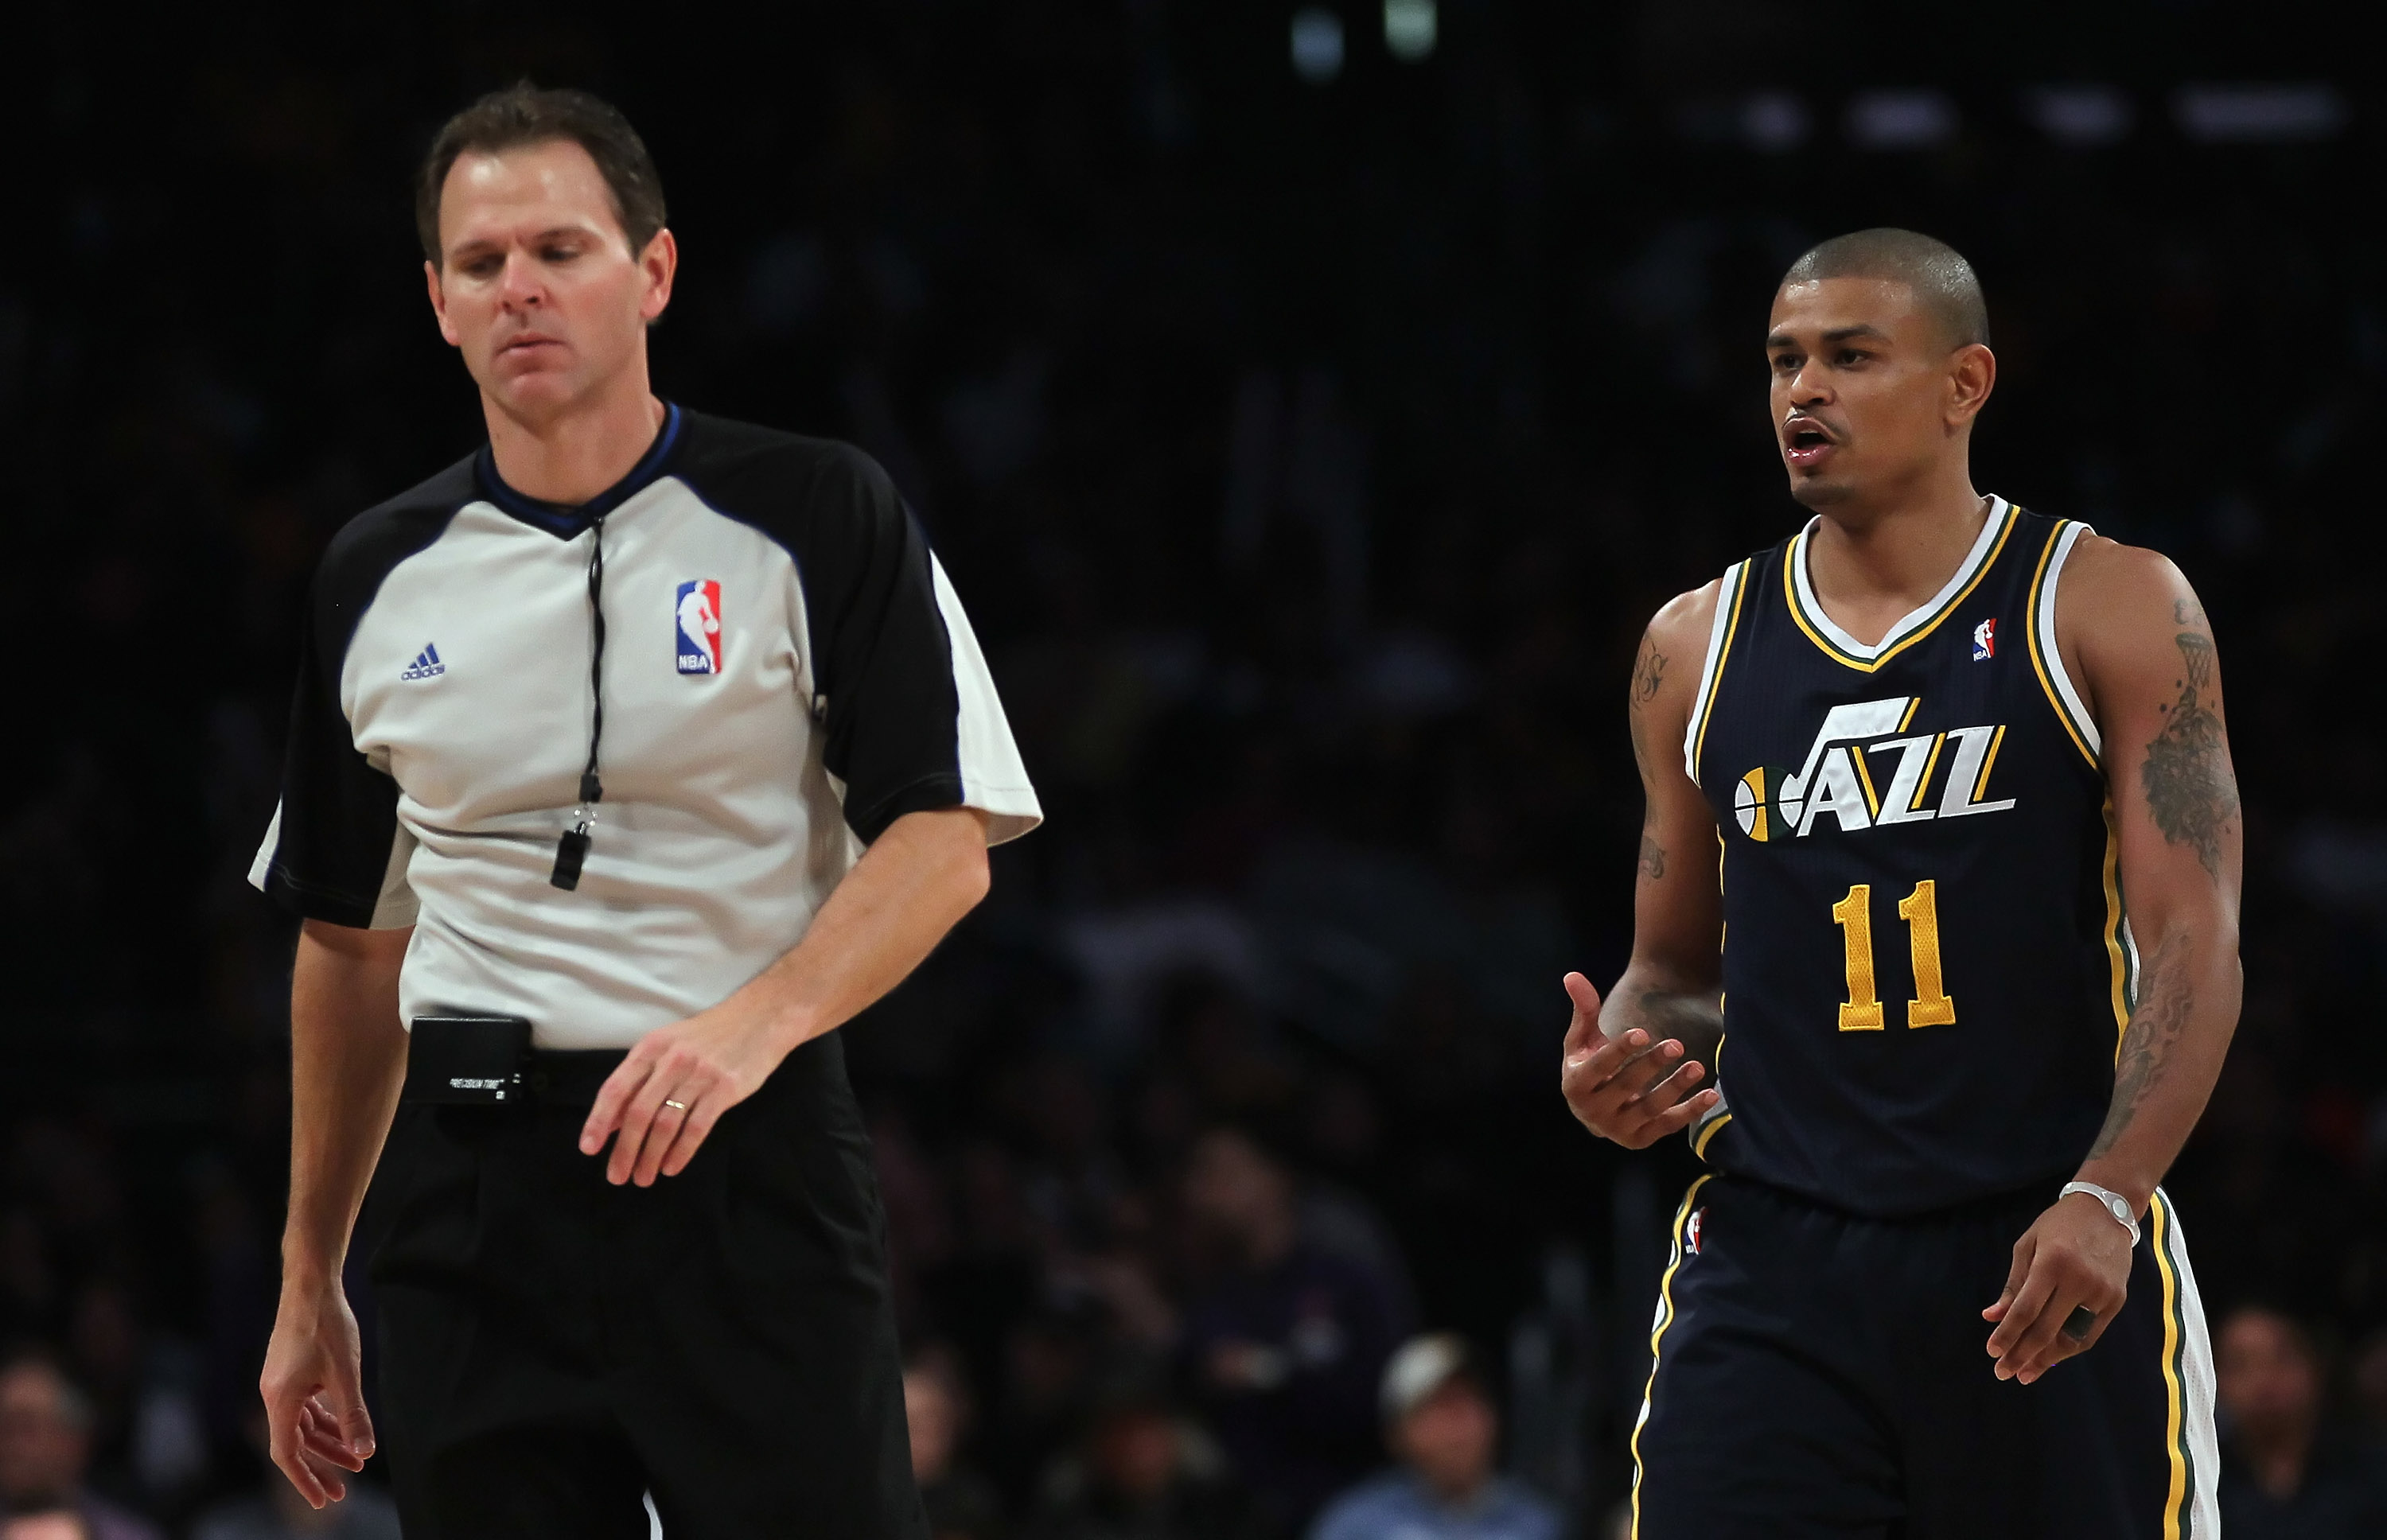 LOS ANGELES, CA - JANUARY 25:  Earl Watson #11 of the Utah Jazz argues a call with referee Mark Ayotte against the Los Angeles Lakers in the second half at Staples Center on January 25, 2011 in Los Angeles, California. The Lakers defeated the Jazz 120-91.